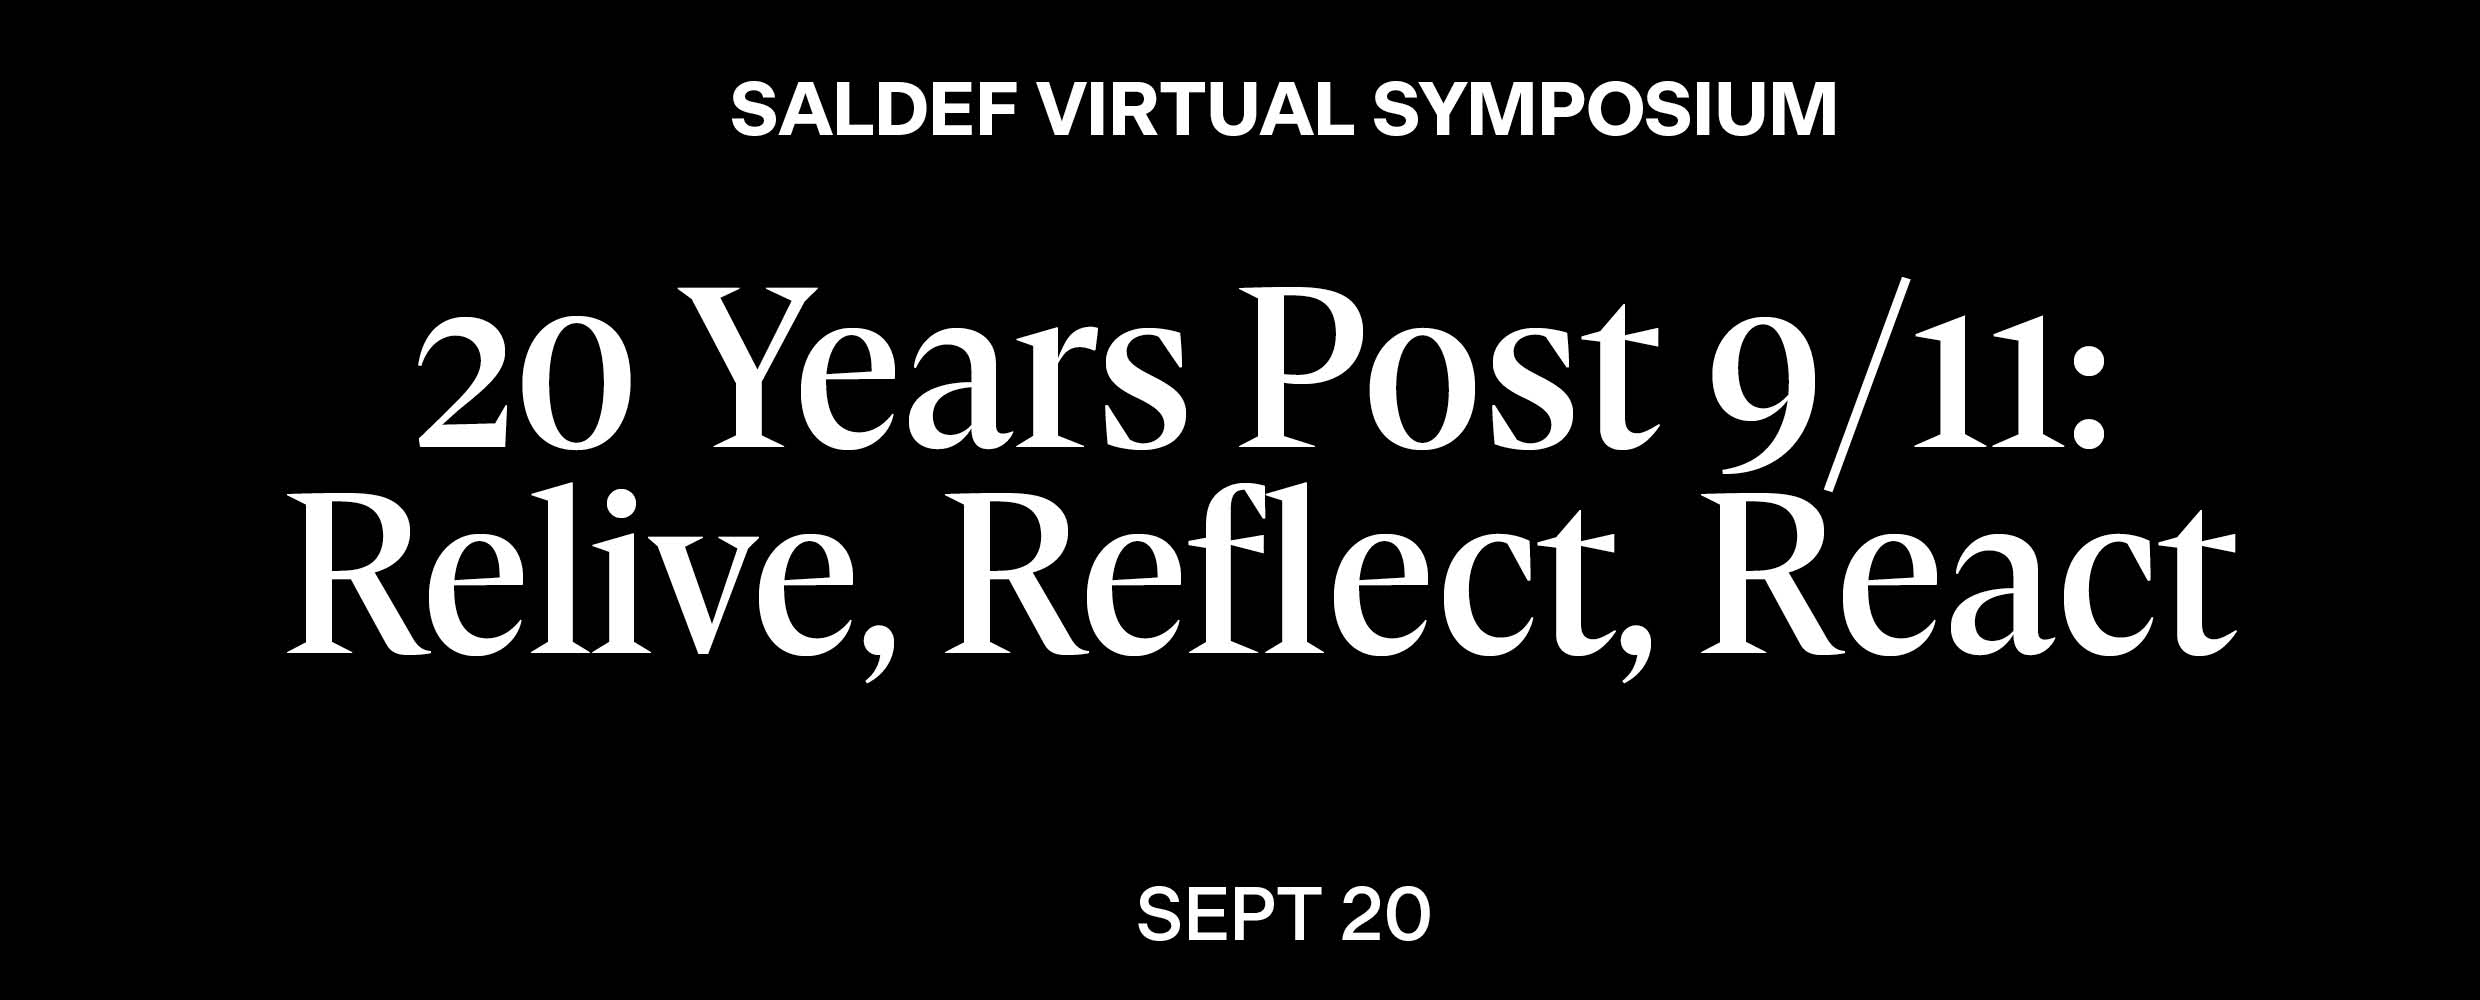 20 Years Post 9/11: Relive, Reflect, React Virtual Symposium